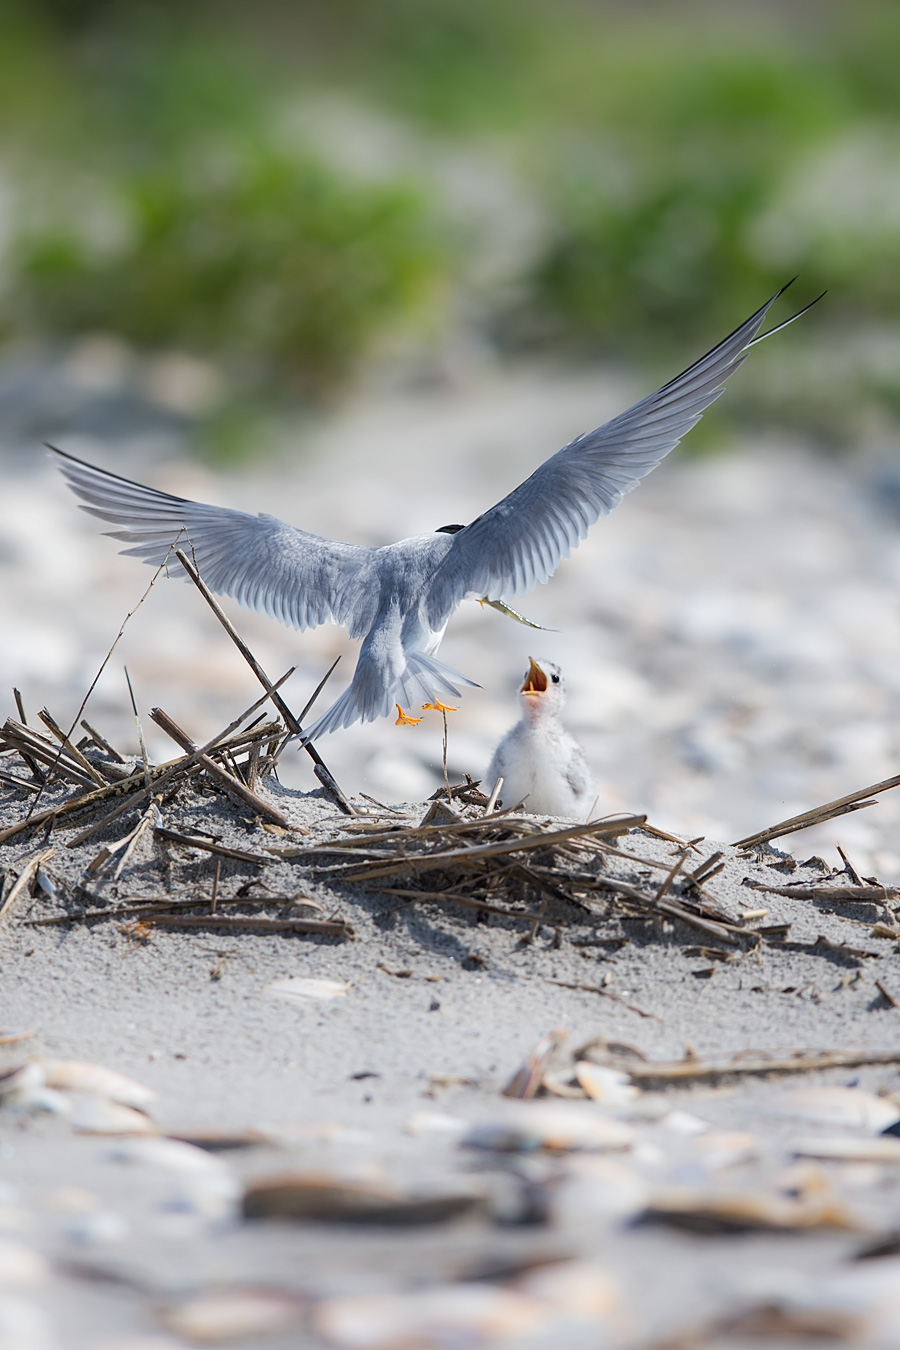 Fat little Least Tern babies run amok through the dune, waddling around and waiting for their parents to bring them fresh fish from the sea